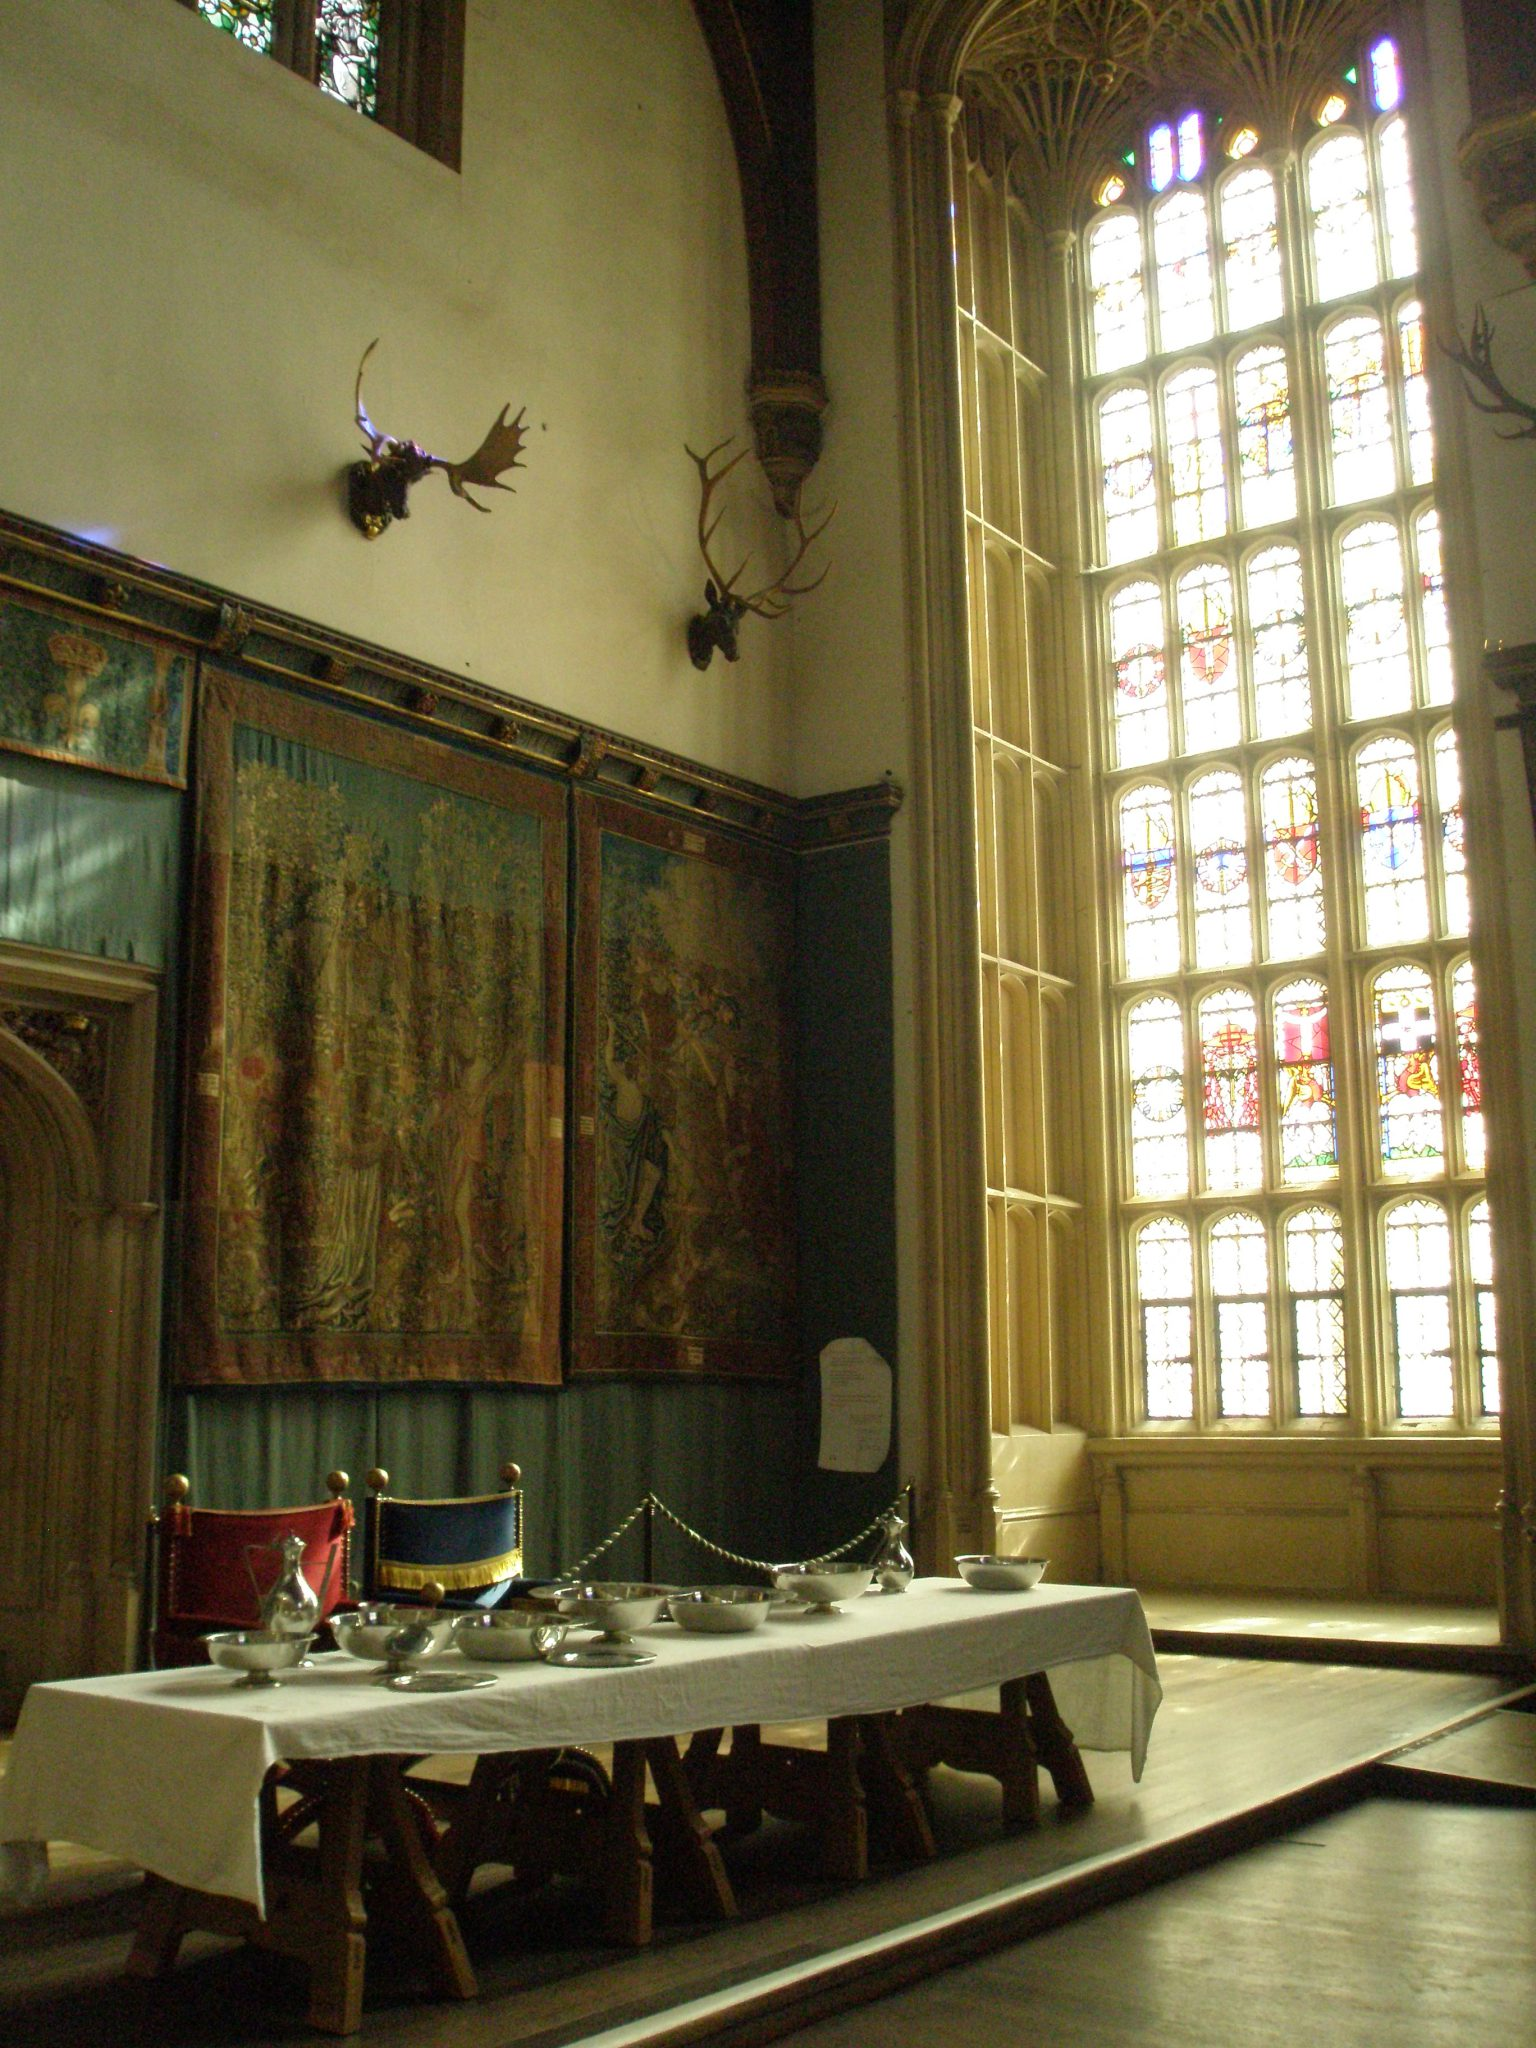 Henry's Dining Table in the Great Hall